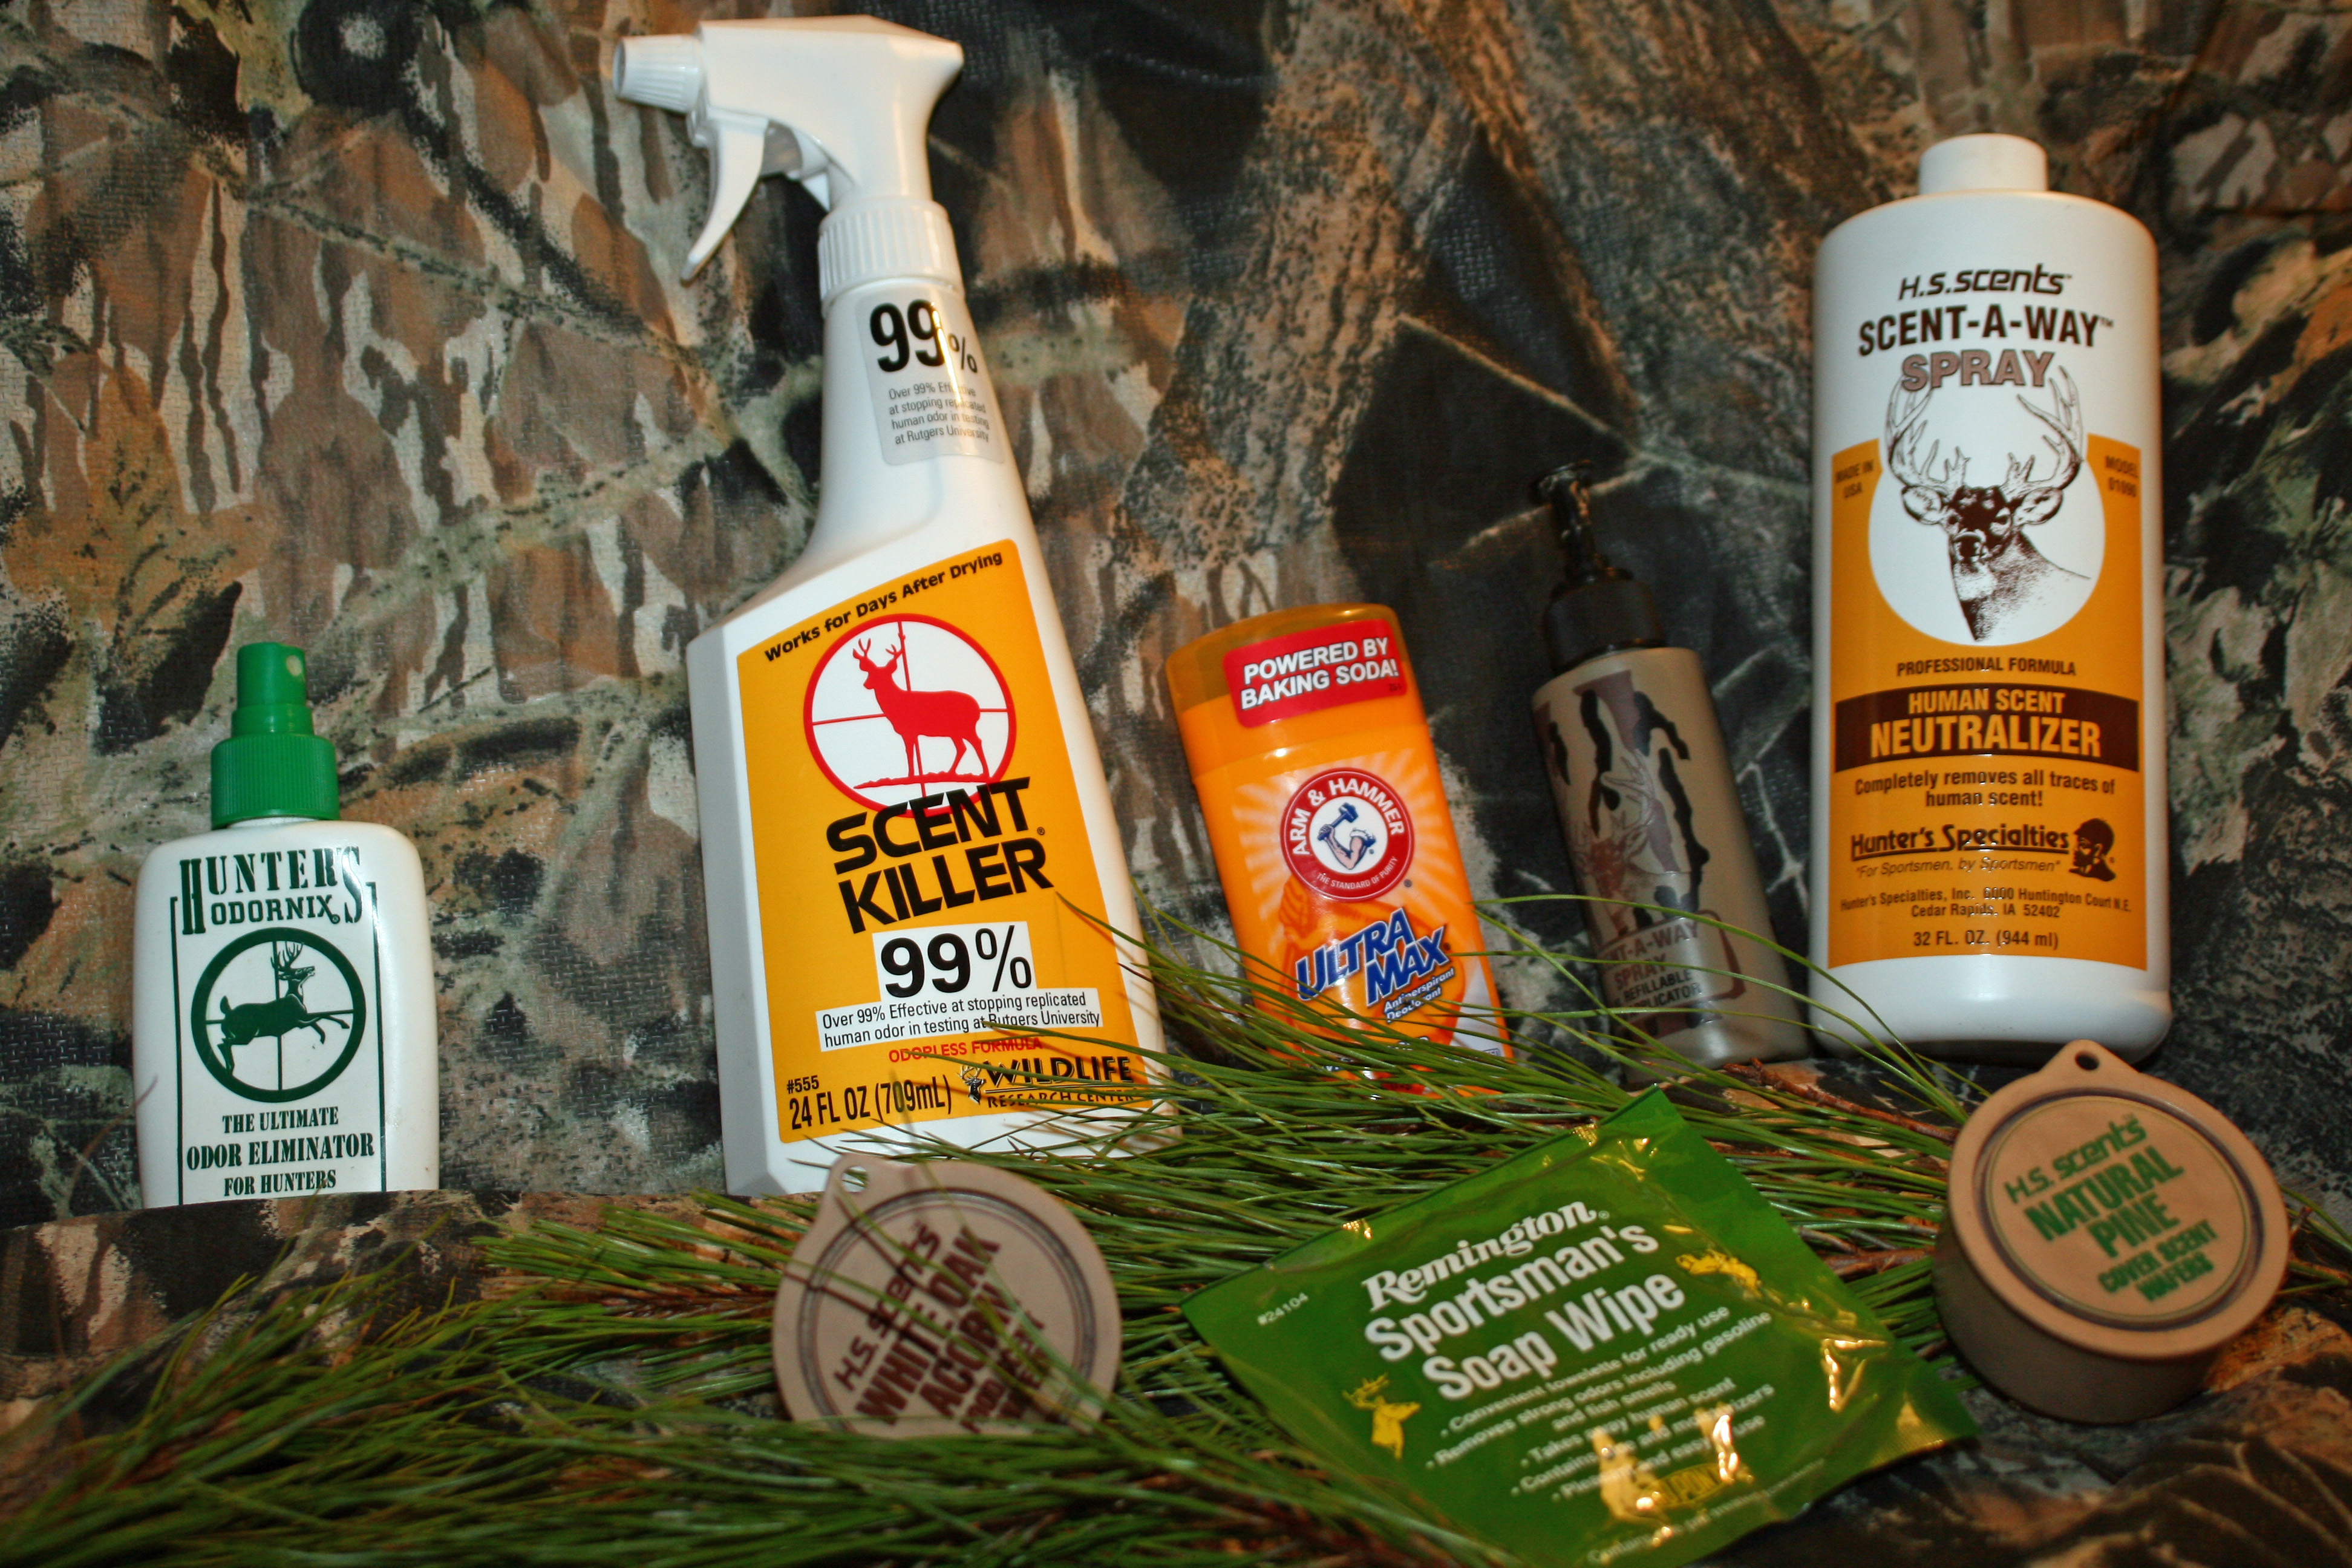 A few calls, maybe a little doe urine and keeping human odor reduced will help kick off early season deer hunting.